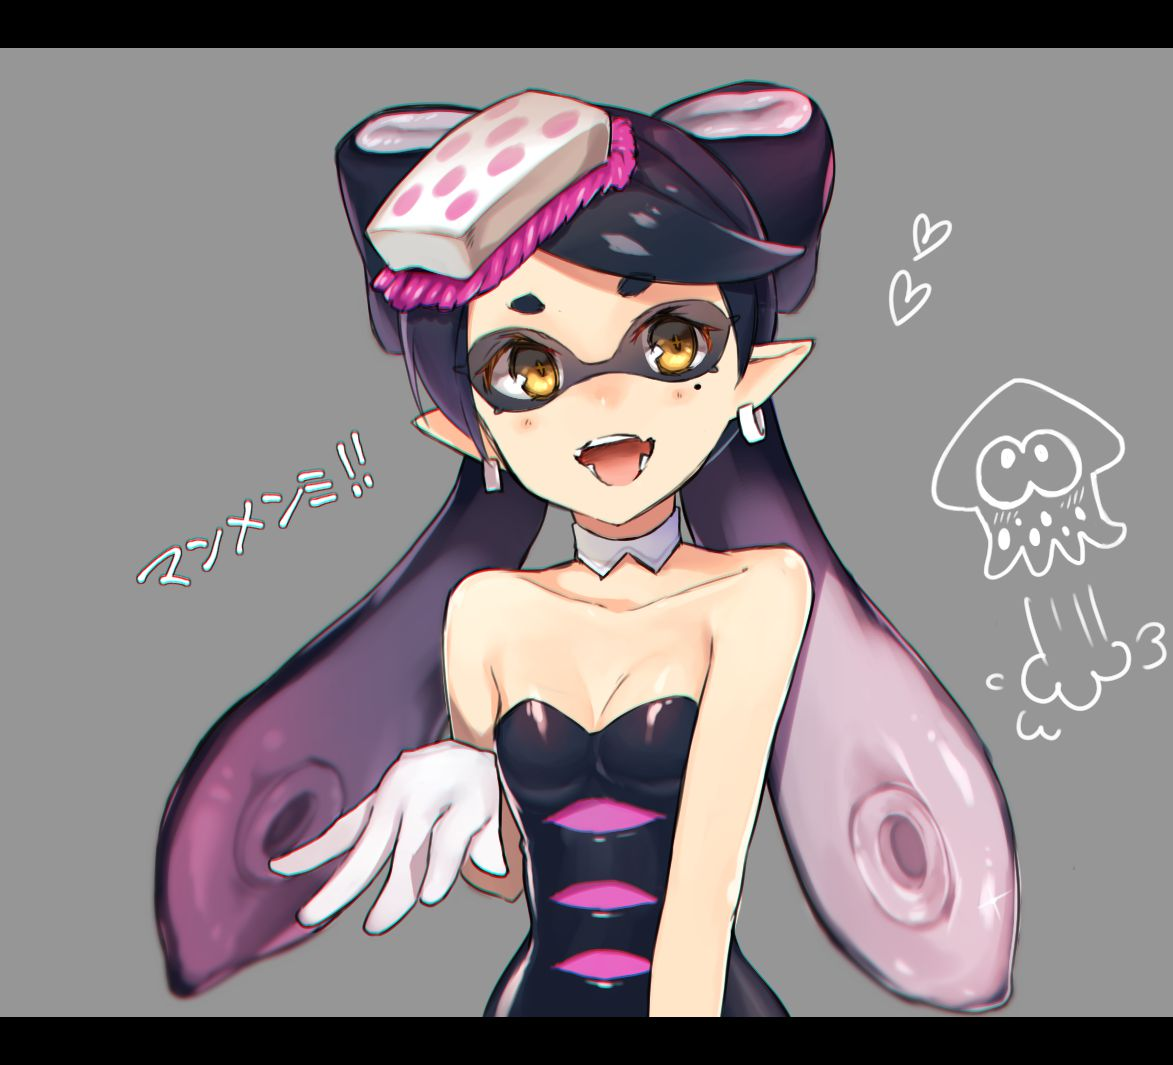 callie_(splatoon)013